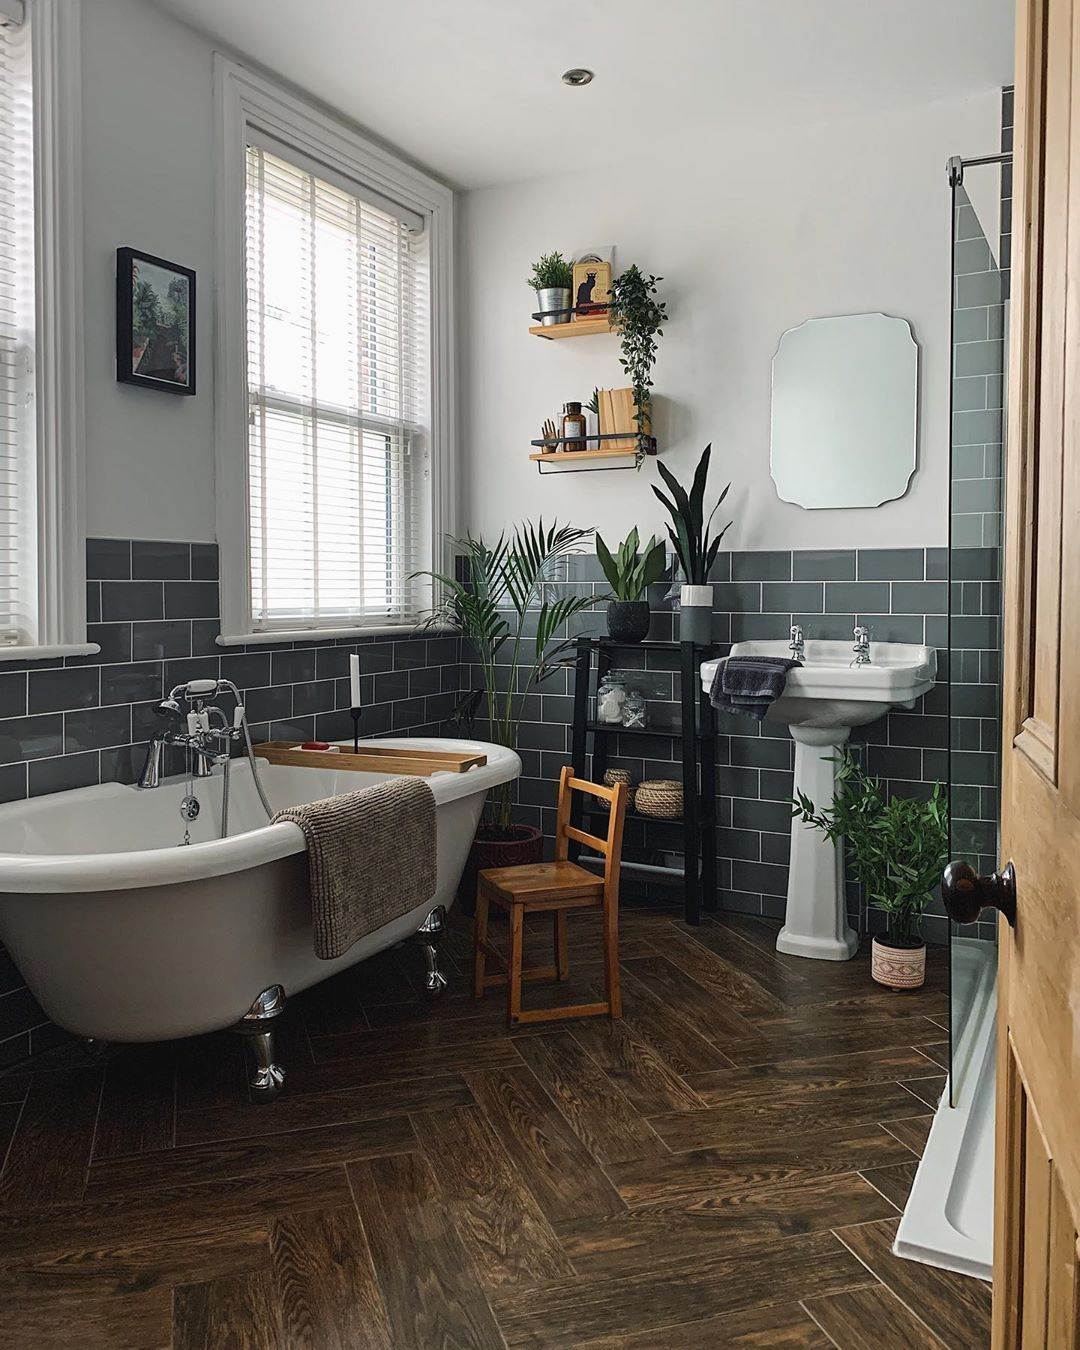 Rachel On Instagram Catpoo Saga Thought Today Would Be Better But I Forgot To Unlock The Catflap Last Nigh In 2020 Bathroom Inspiration Rachel House Interior Inspo